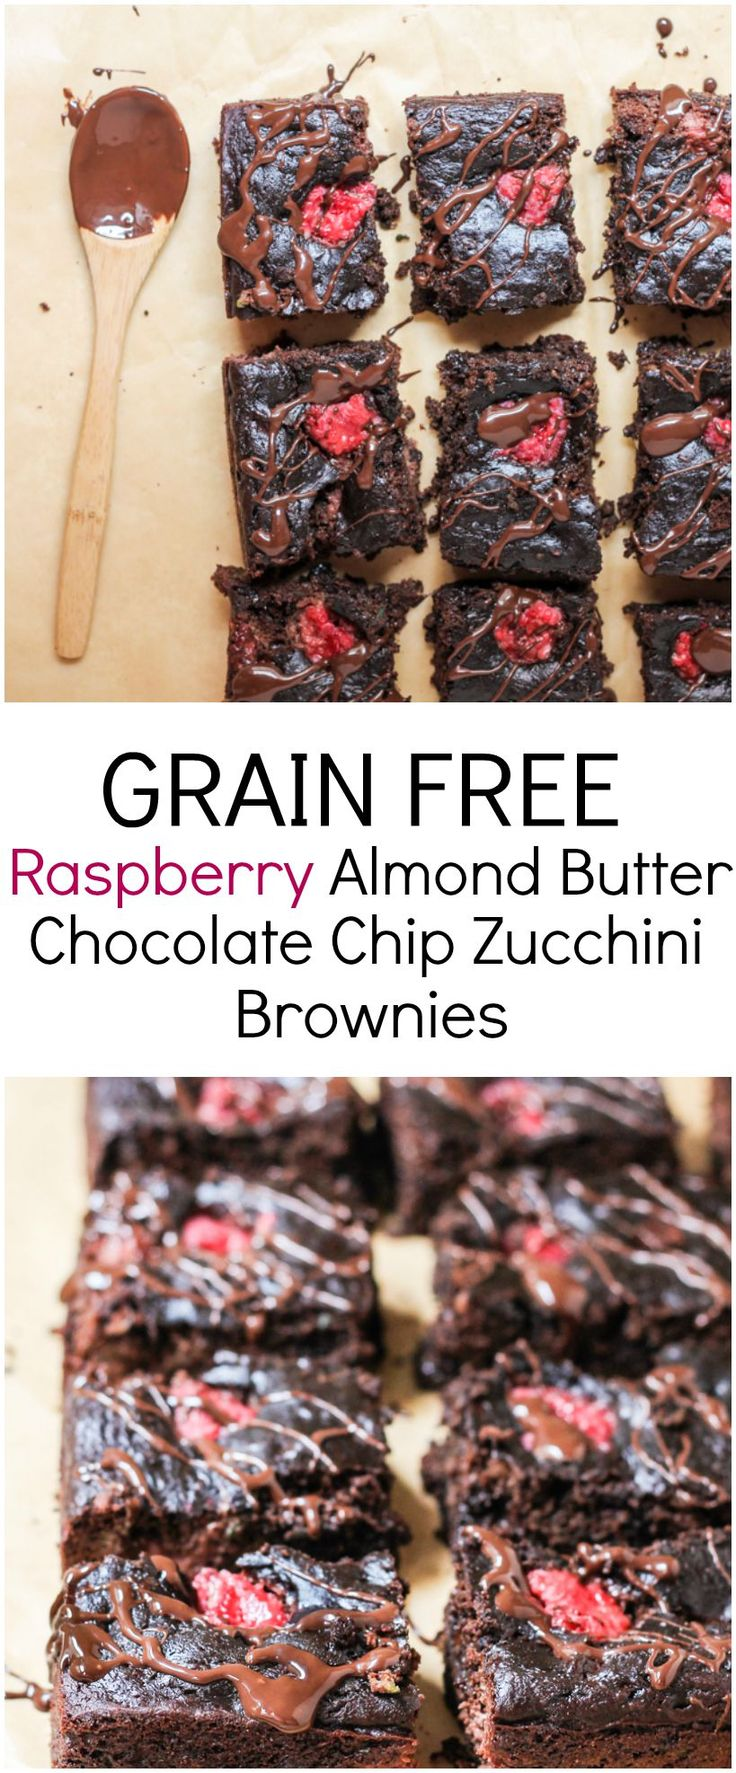 1000+ images about Gluten Free! on Pinterest | Zucchini brownies ...